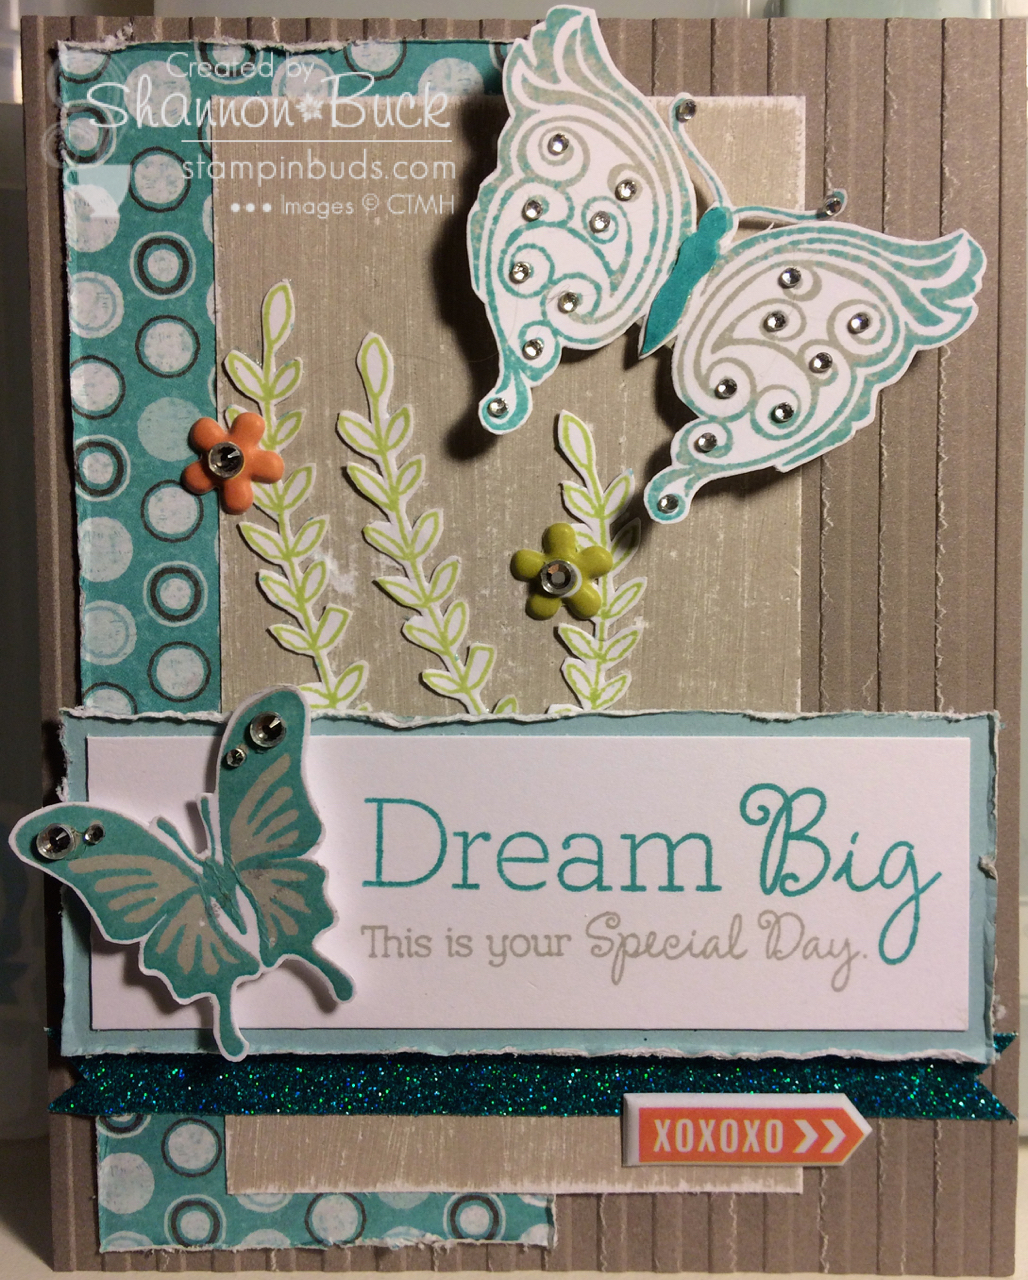 Stampin' Buds Mojo Monday with CTMH